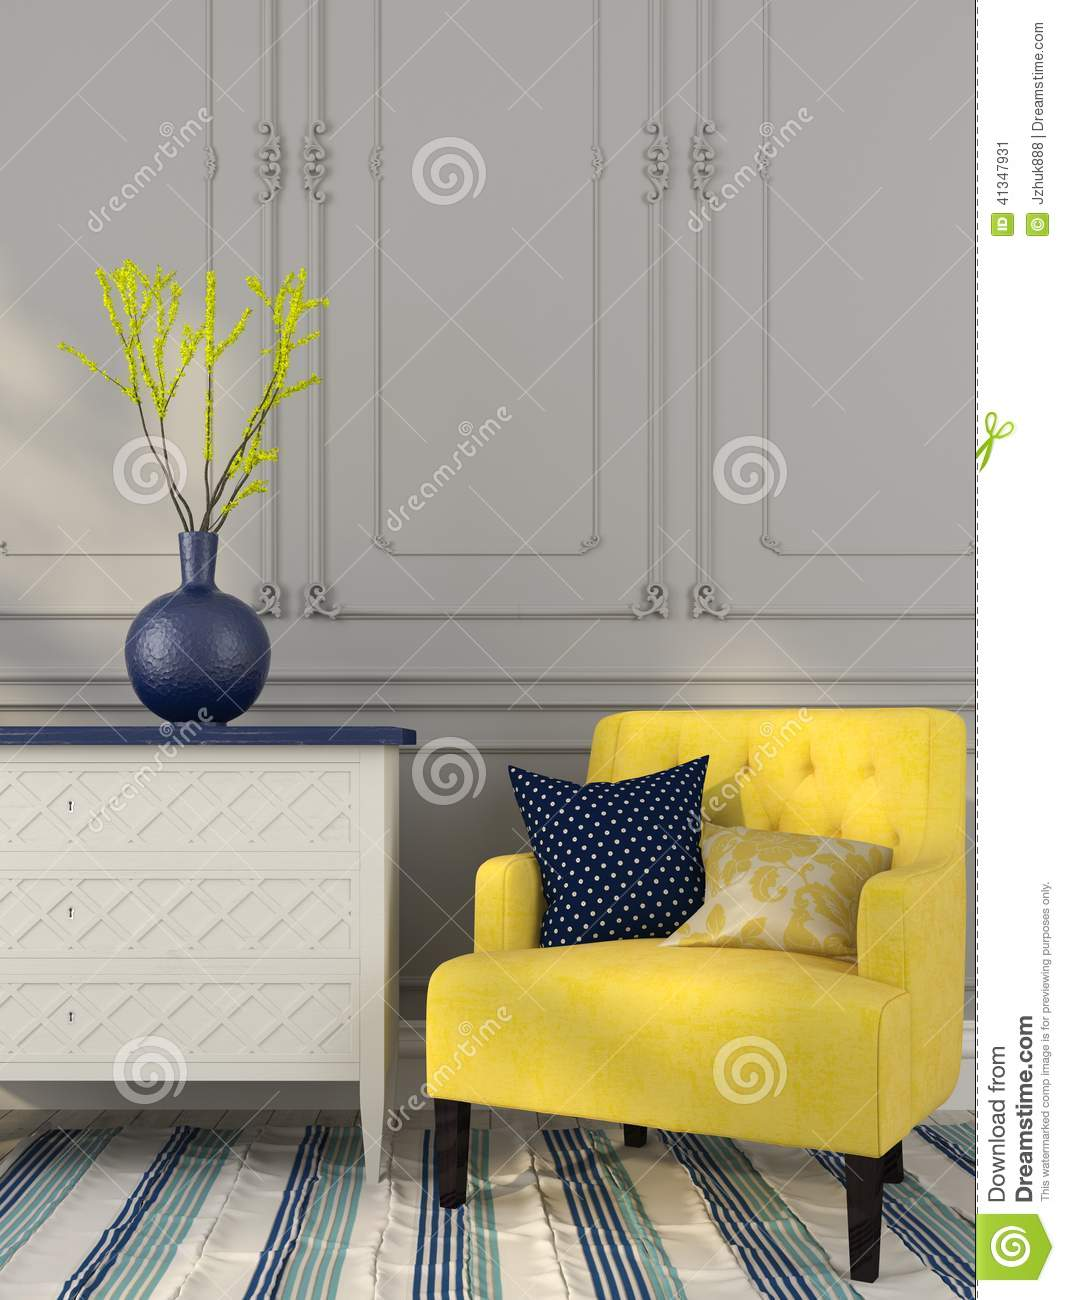 Superior Yellow Chair Near The White Chest Of Drawers